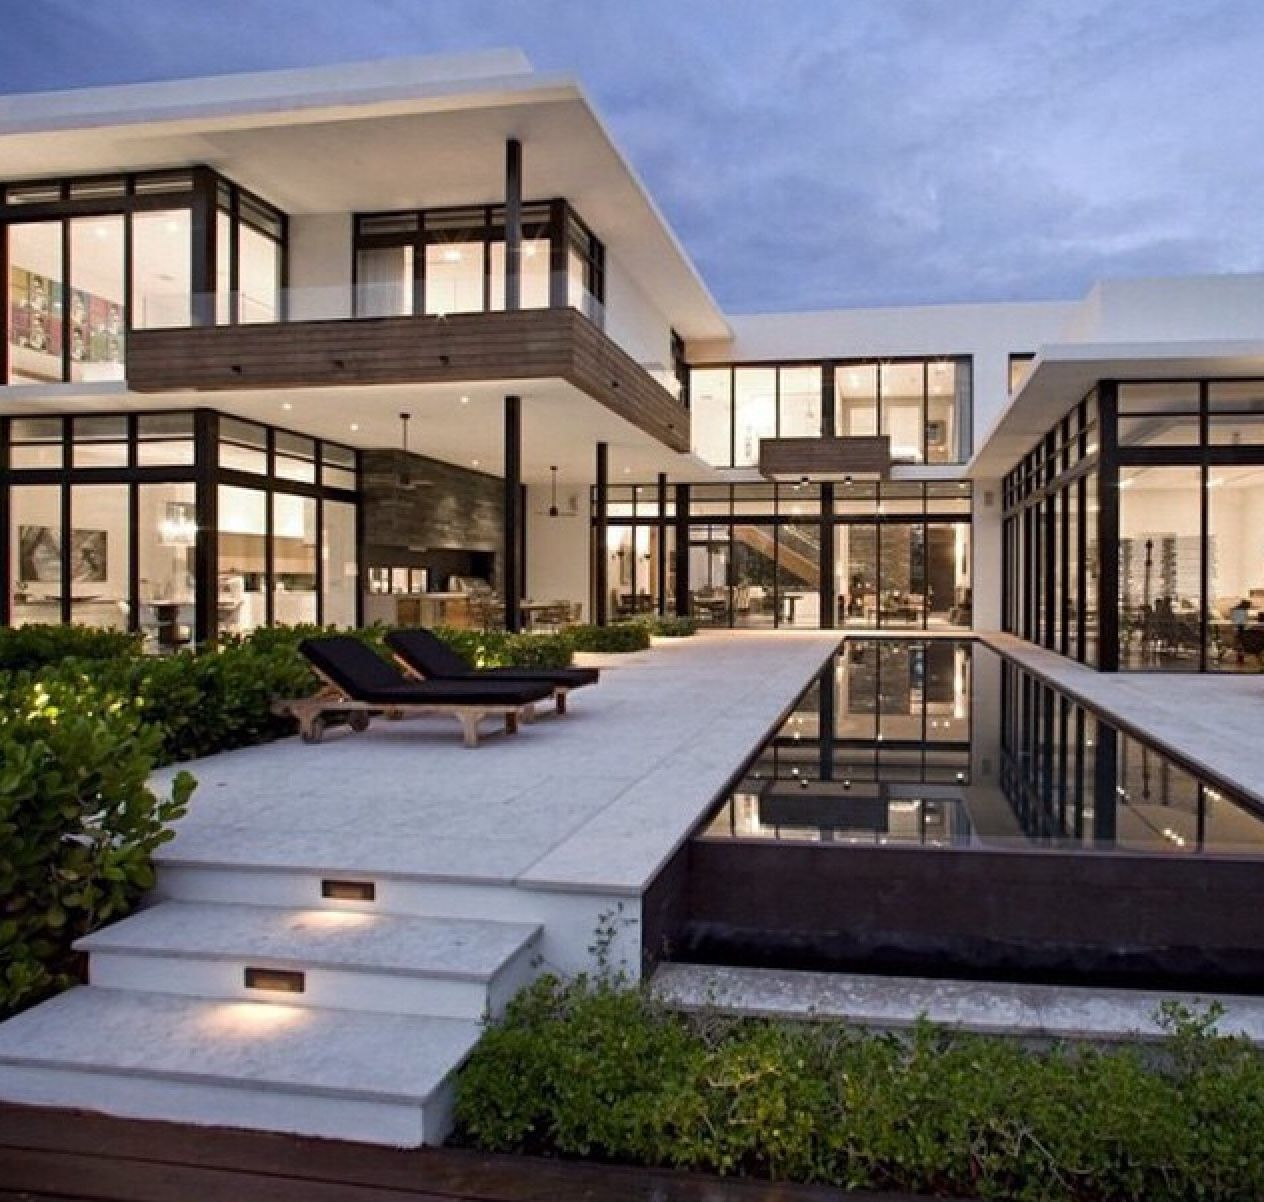 KZ Architecture Have Designed The South Island Residence, A Single Family  Home Located In The Town Of Golden Beach, Florida. South Island Residence  By KZ